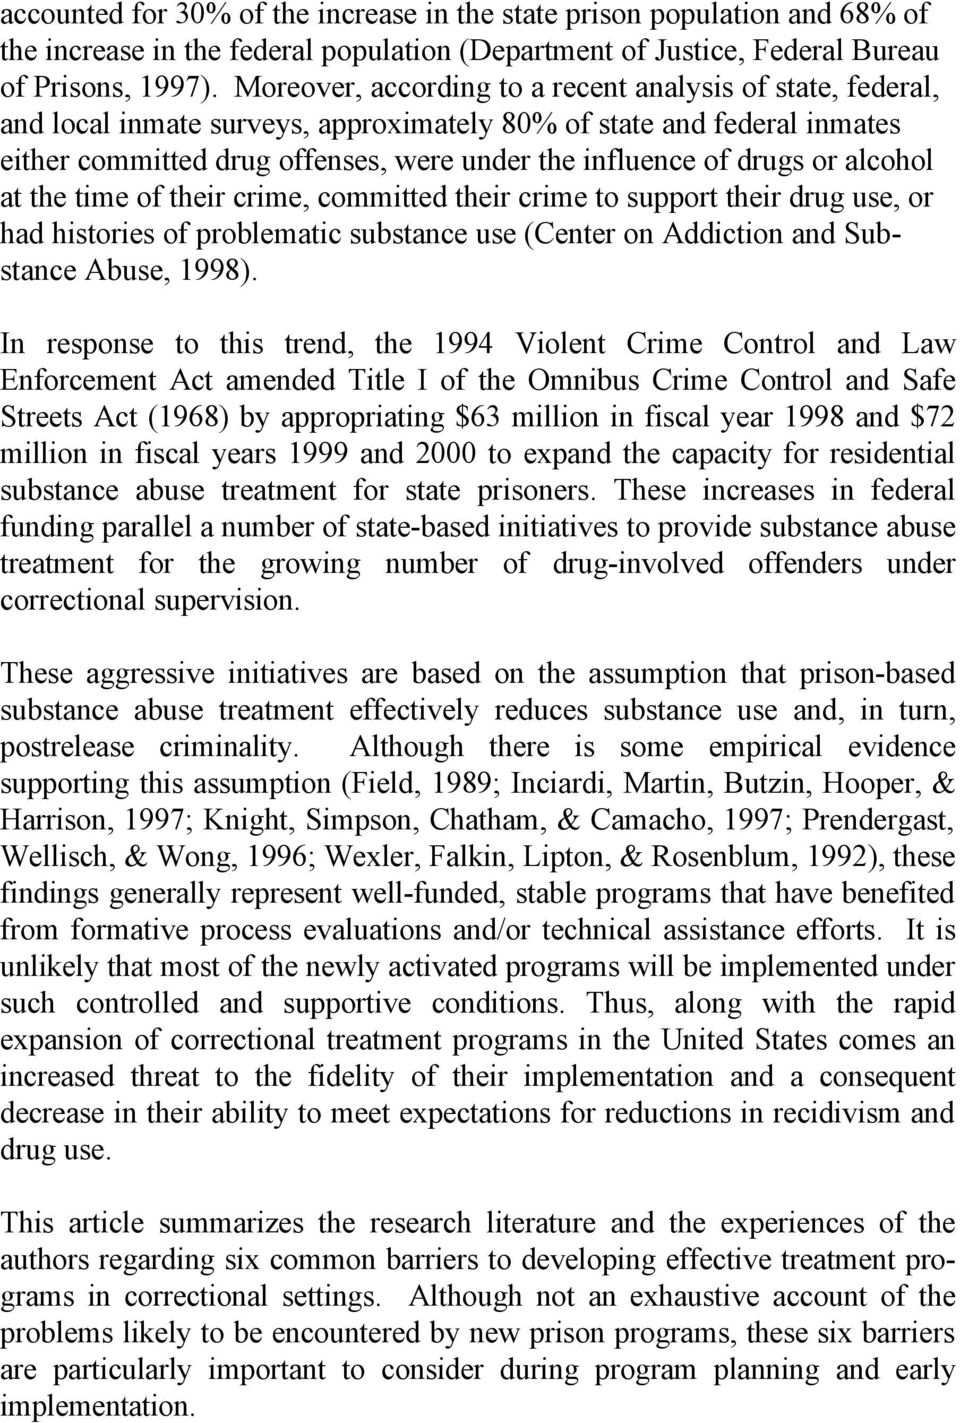 or alcohol at the time of their crime, committed their crime to support their drug use, or had histories of problematic substance use (Center on Addiction and Substance Abuse, 1998).